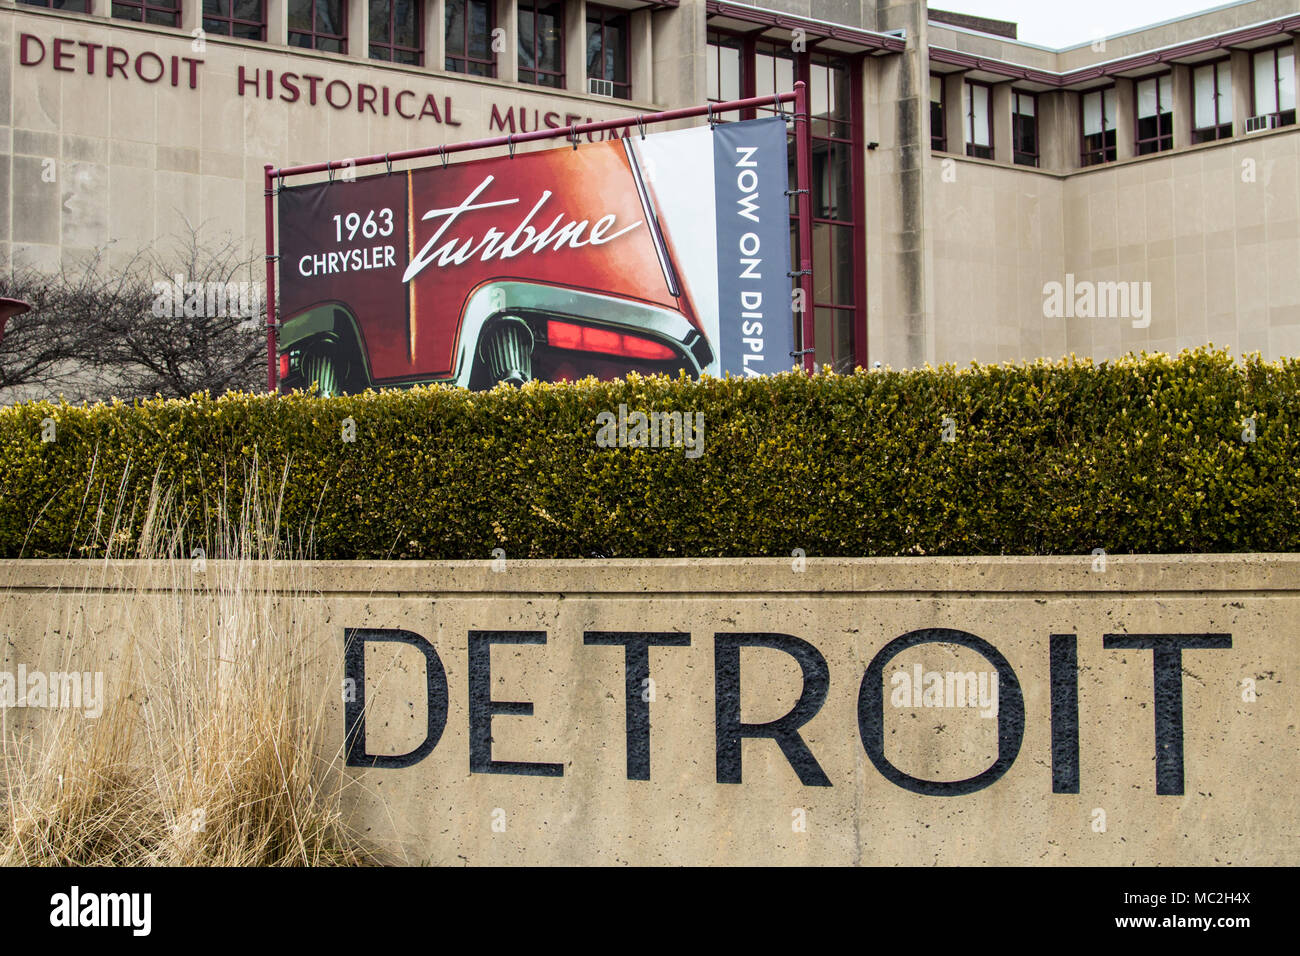 Exterior of the Detroit Historical Museum. The museum offers free admission year around and is considered one a must see while visiting Detroit. - Stock Image